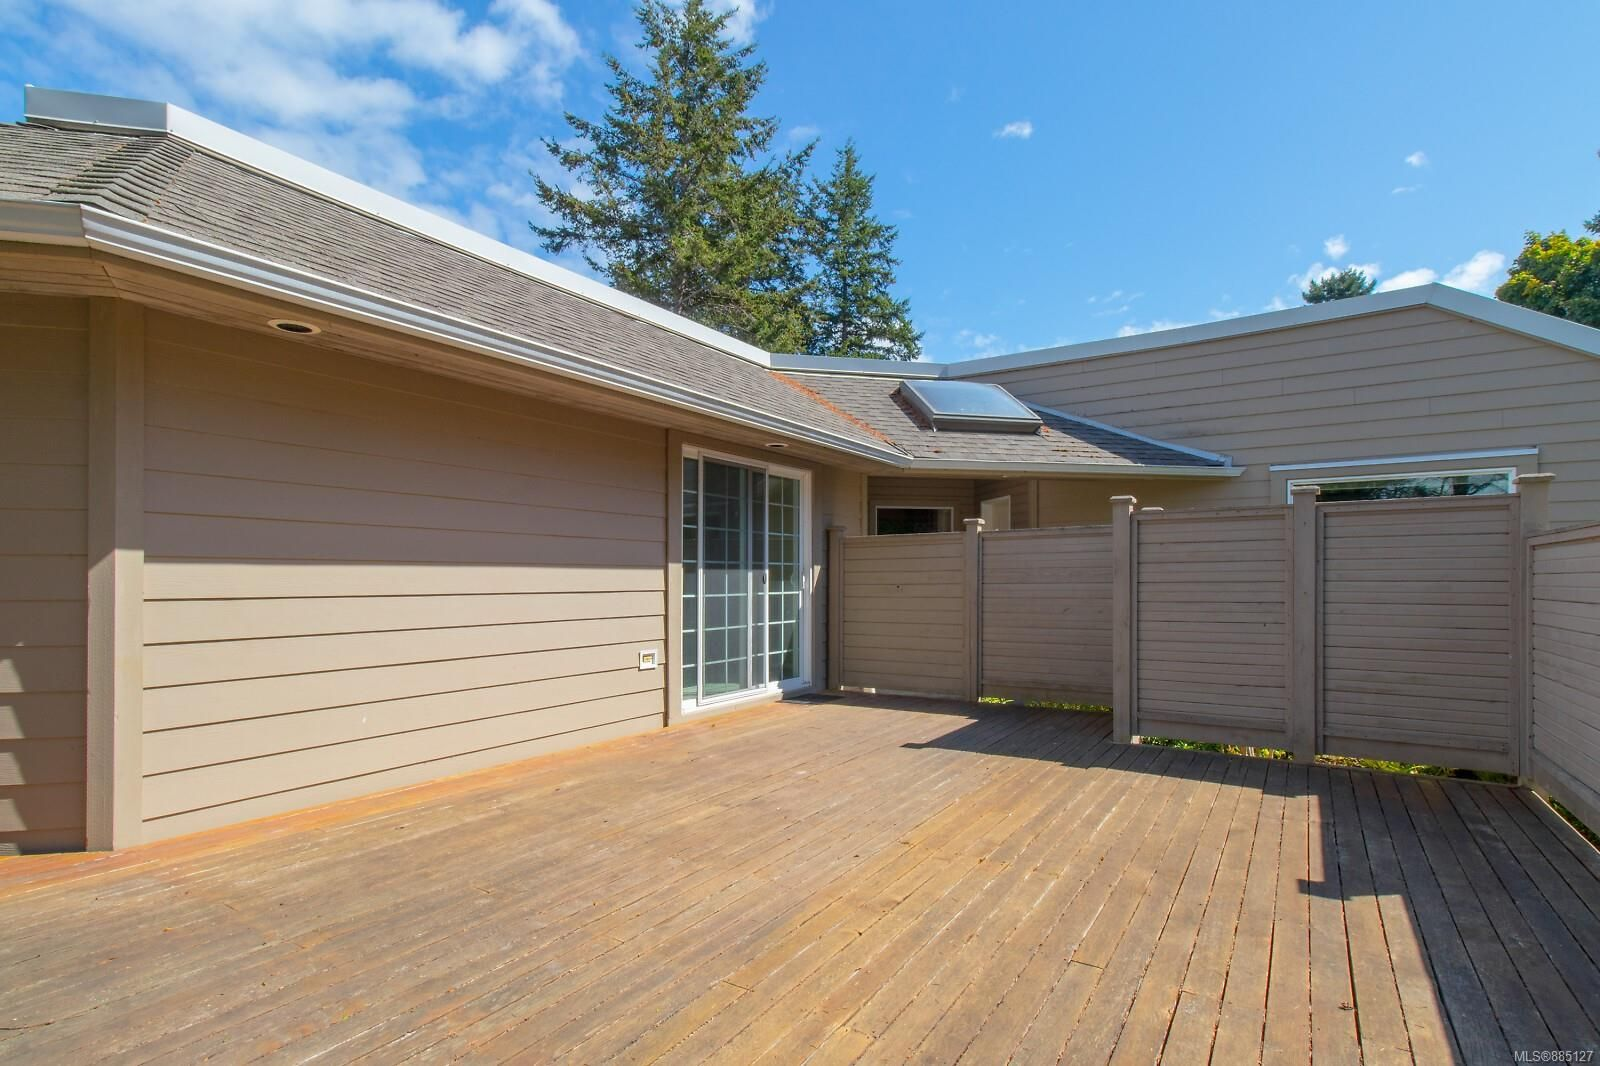 Photo 24: Photos: 26 529 Johnstone Rd in : PQ French Creek Row/Townhouse for sale (Parksville/Qualicum)  : MLS®# 885127